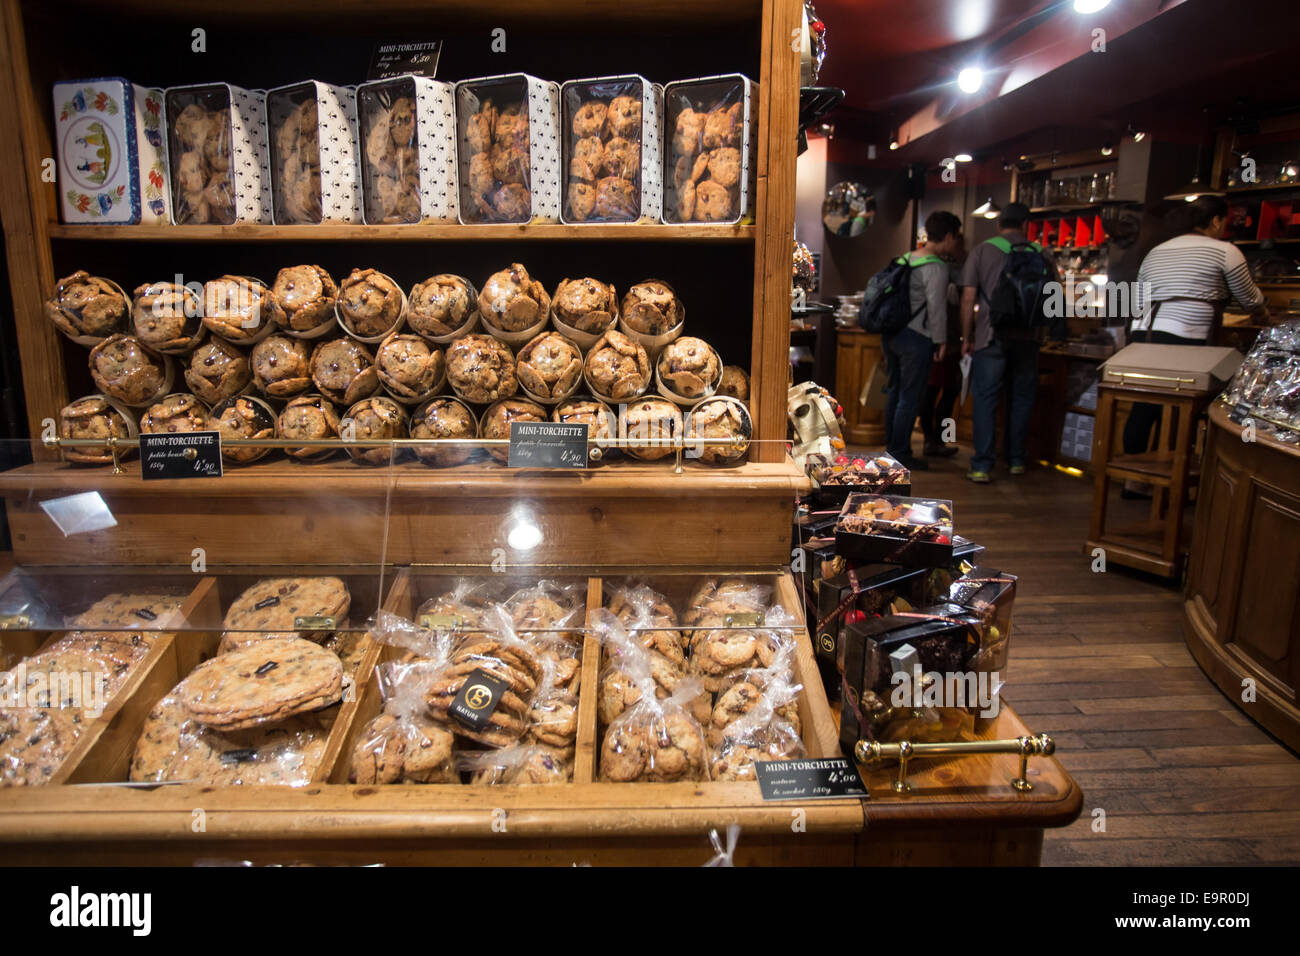 PARIS, FRANCE - SEPTEMBER 10, 2014:  View of bakery items on display at patisserie in Paris France. - Stock Image